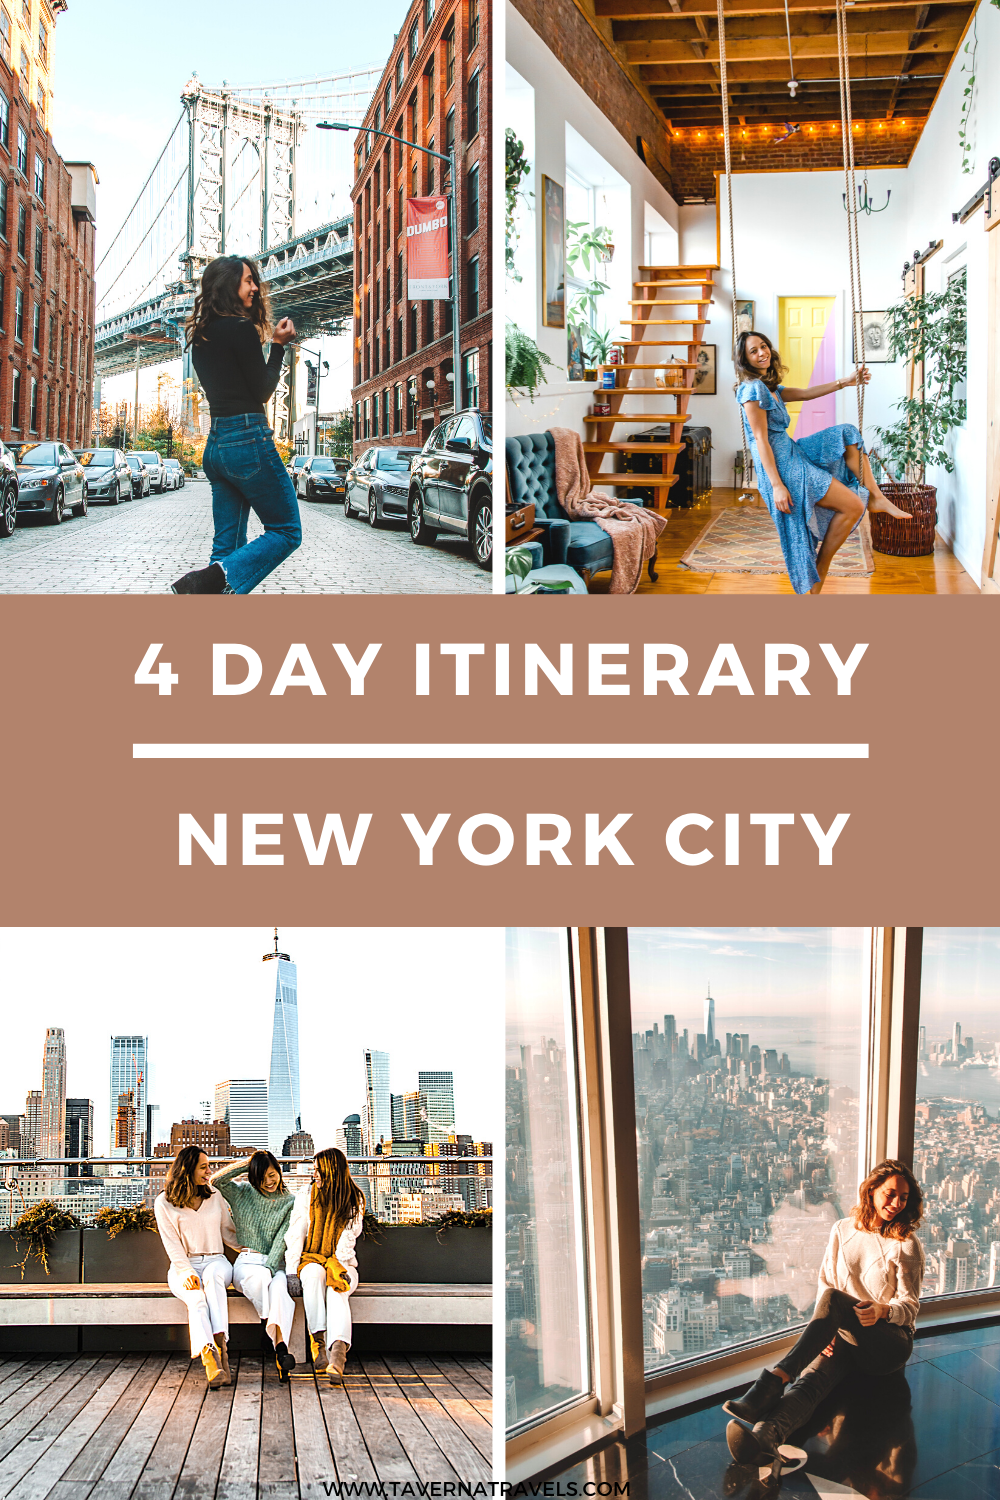 4 Days in New York City Itinerary